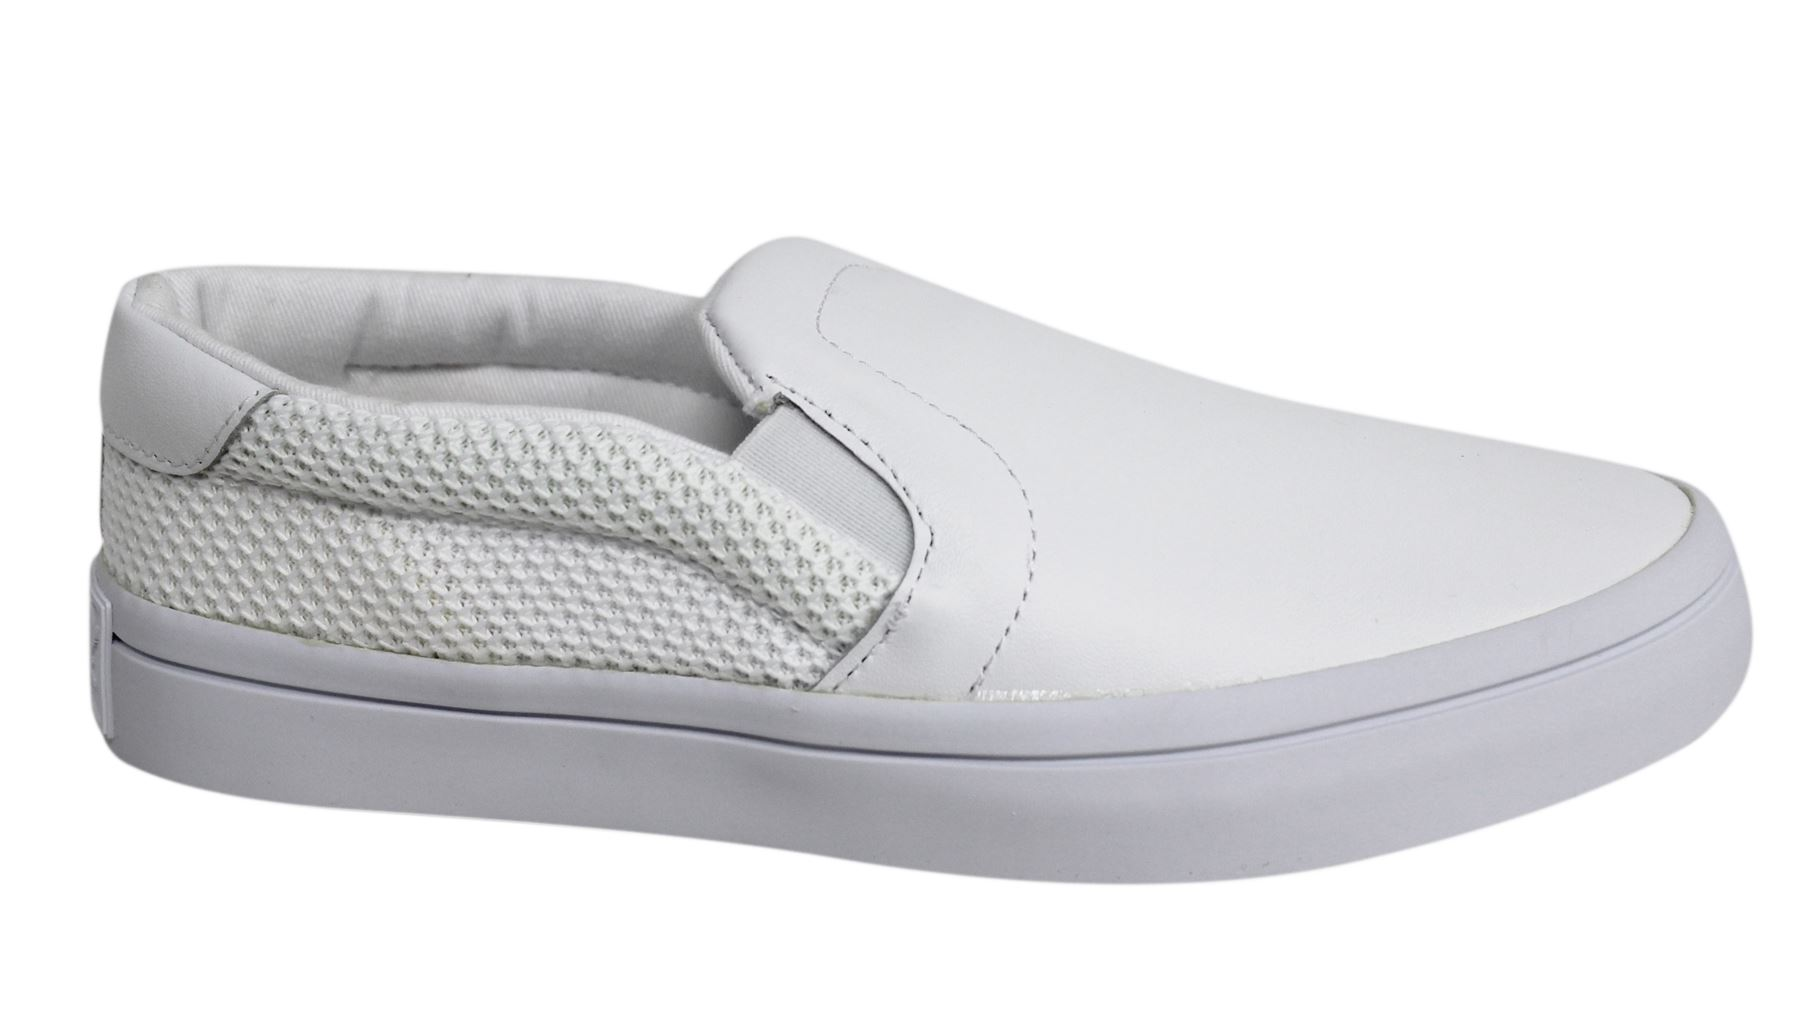 2fa45c5af6015 Adidas Originals Slip On White Leather Womens Trainers Plimsolls S79963 D76